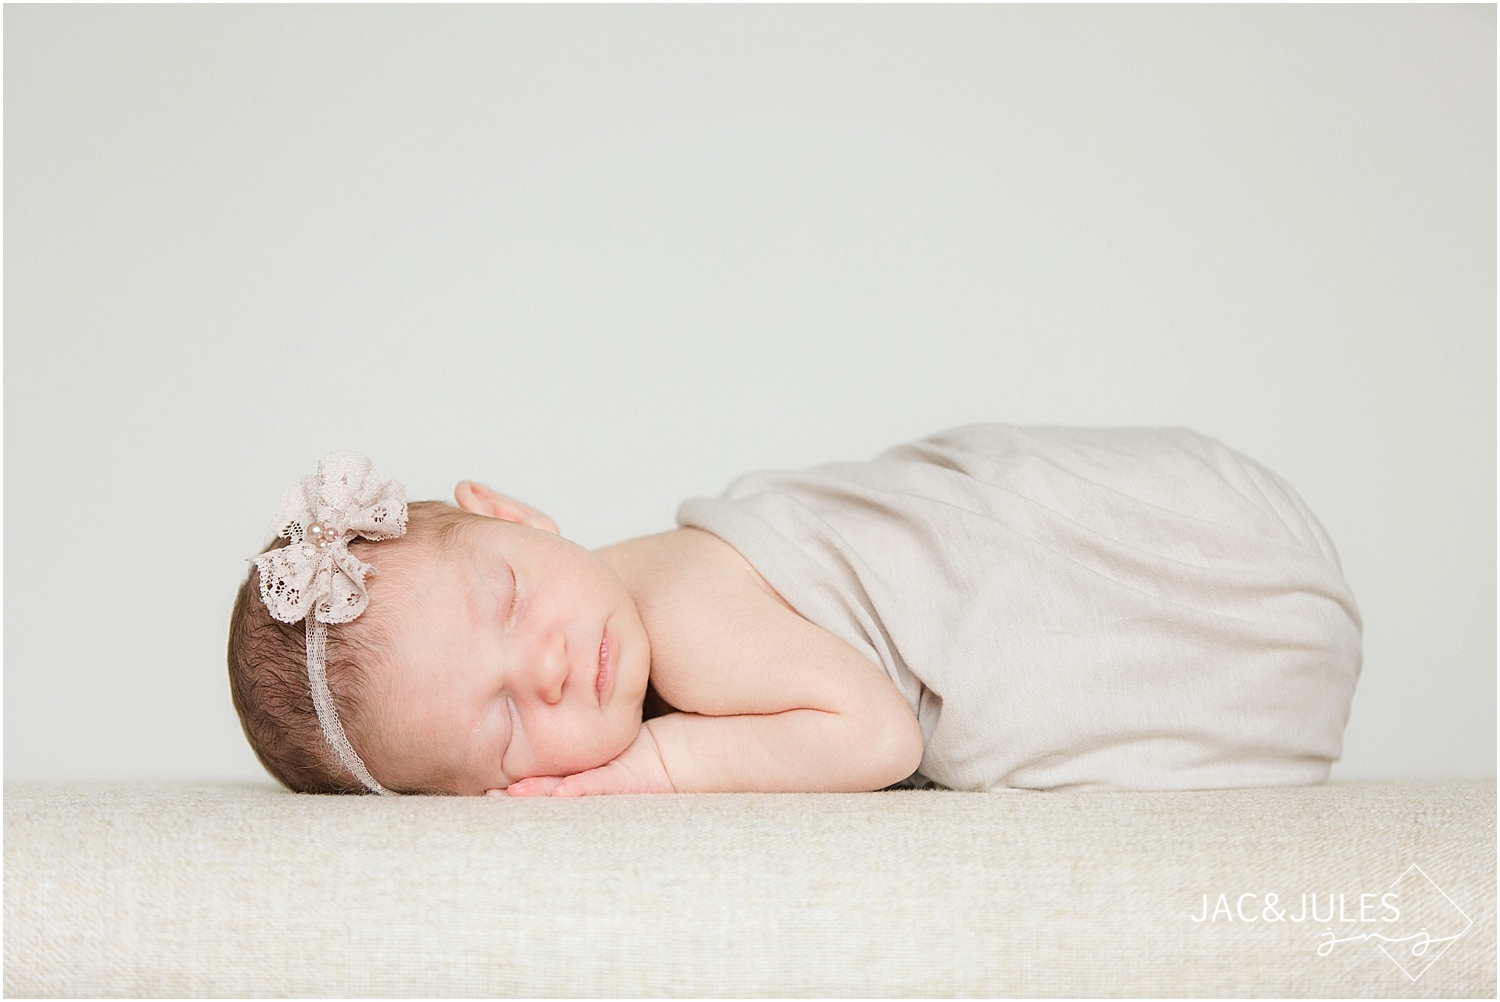 jacnjules photograph a newborn baby girl in Toms River, NJ